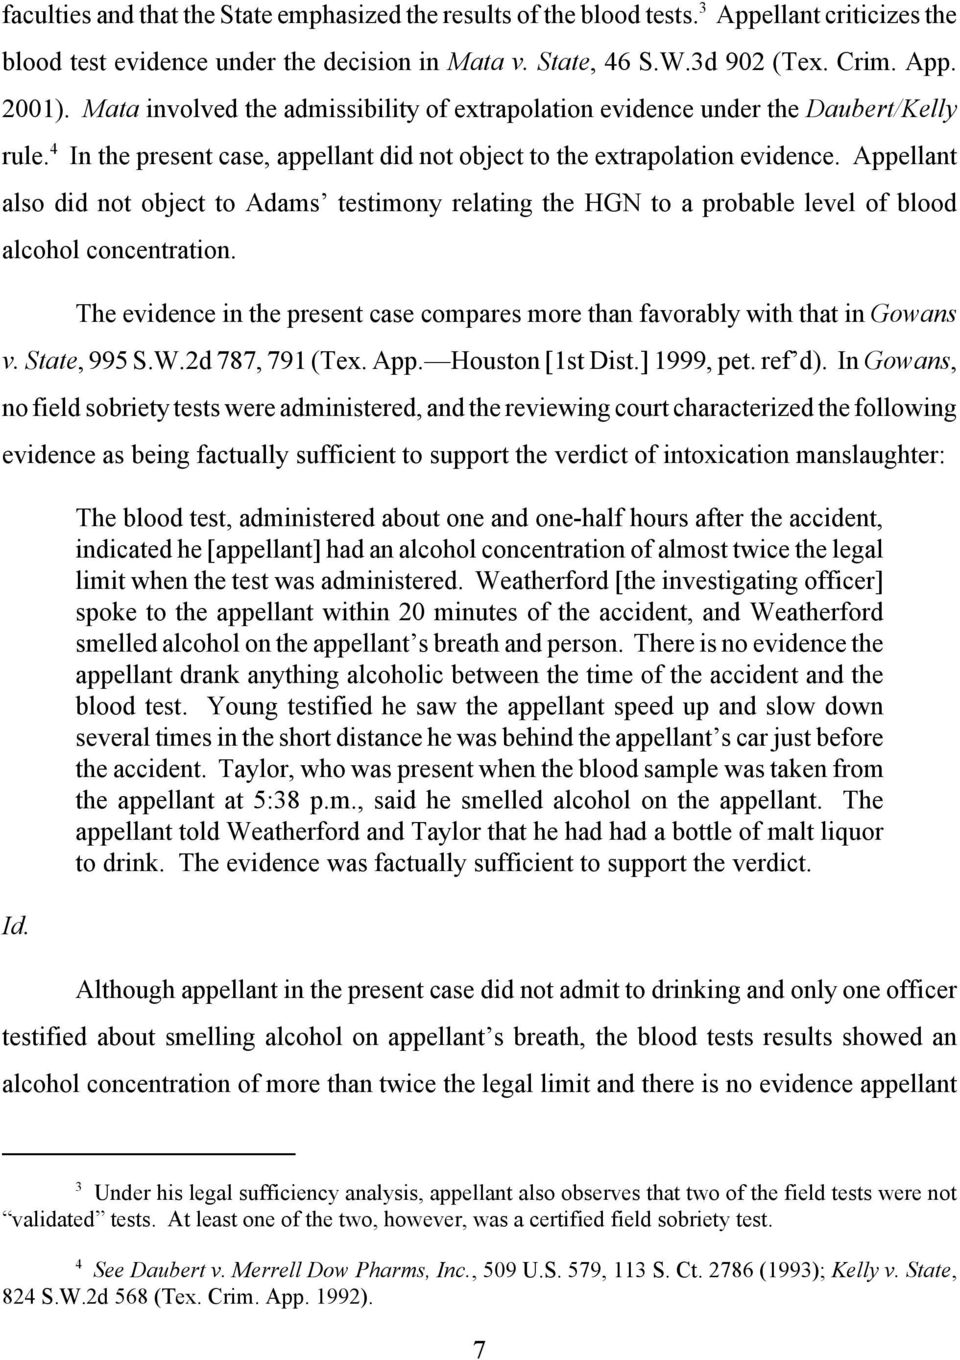 Appellant also did not object to Adams testimony relating the HGN to a probable level of blood alcohol concentration.